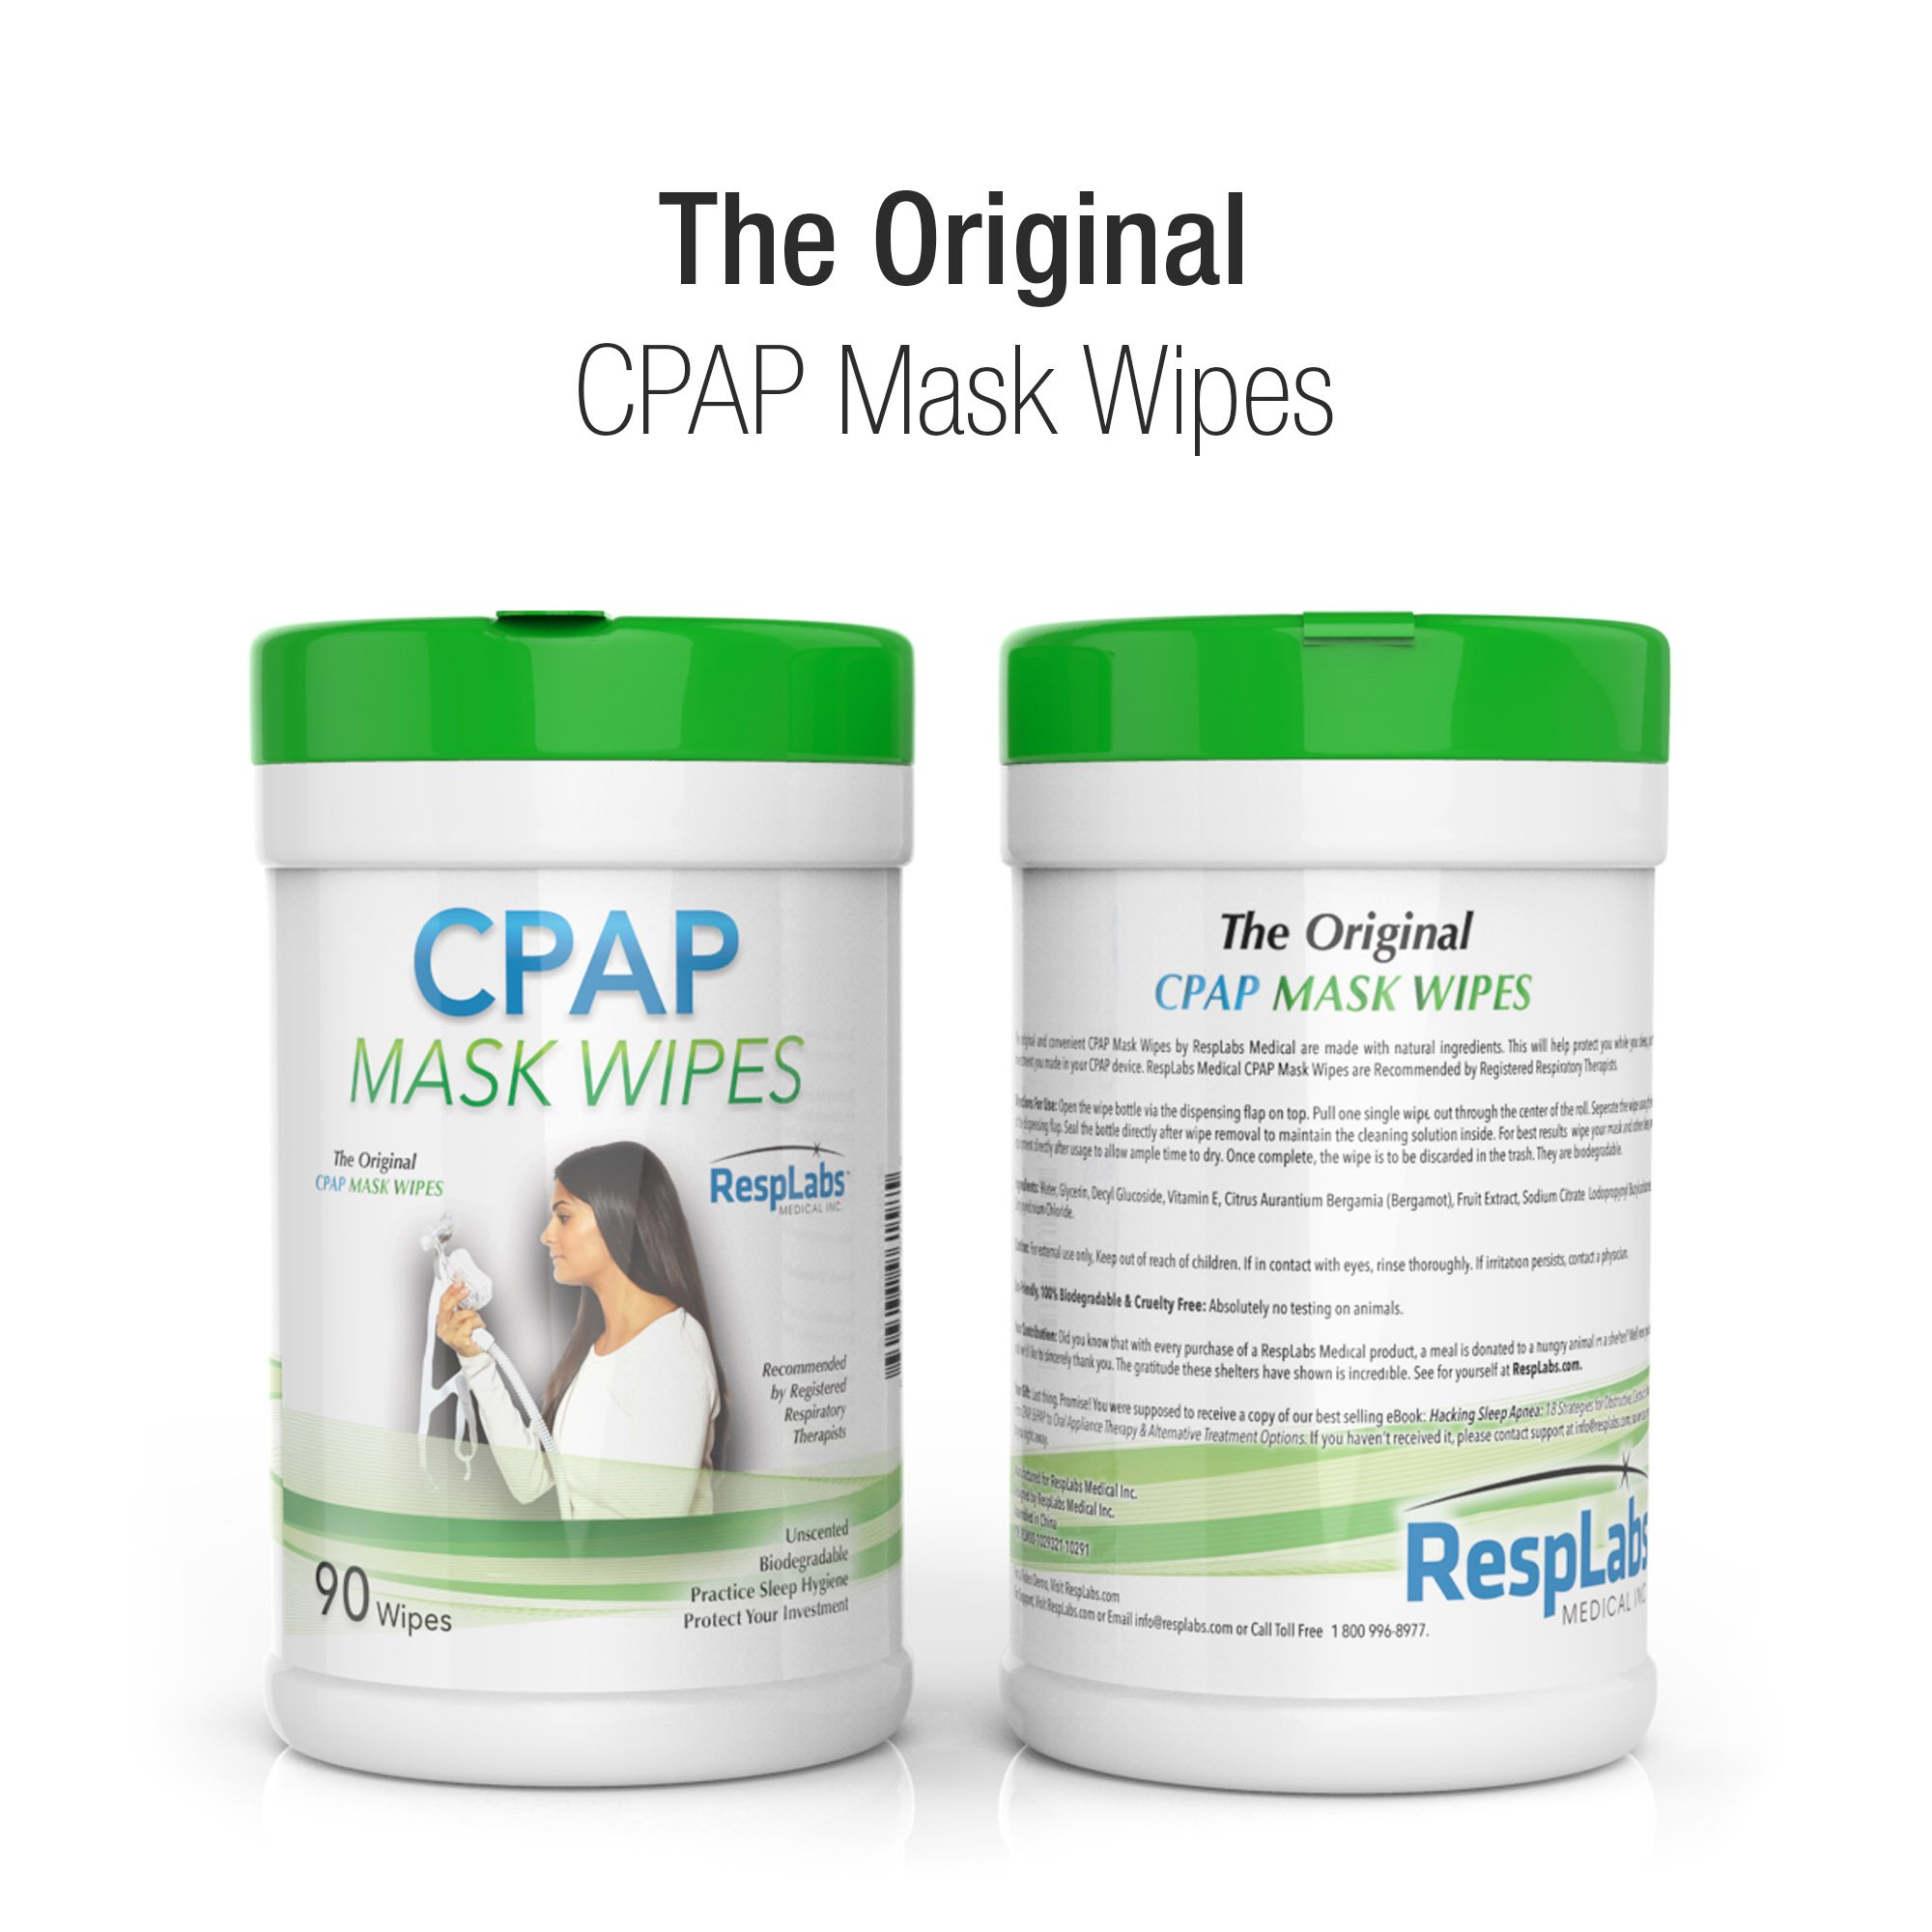 CPAP Mask Cleaning Wipes - 90 Pack + Travel Wipe | The Original Unscented Cleaner and Sanitizer for Masks | Equipment & Machine Supplies by RespLabs by RespLabs Medical Inc. (Image #2)